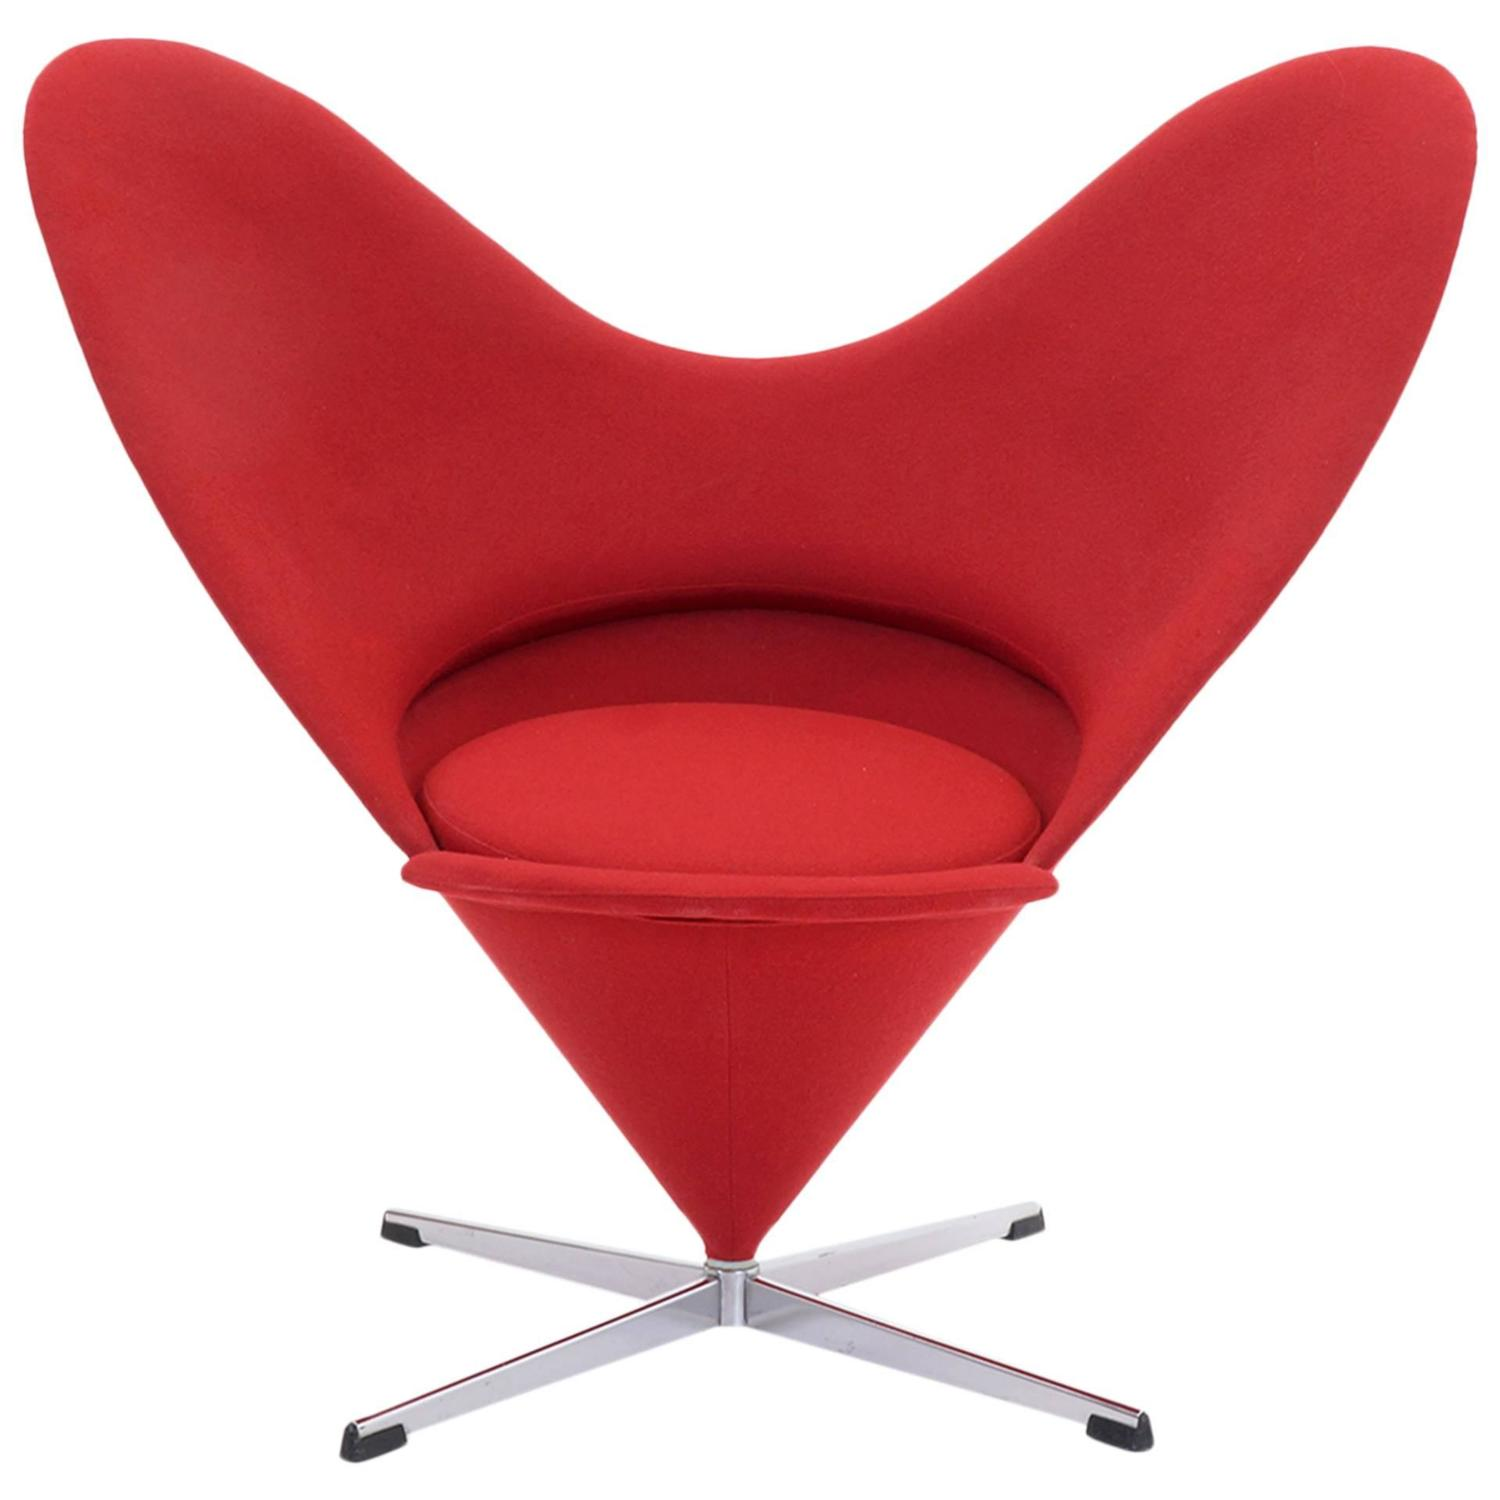 original verner panton cone heart chair for plus linje for sale at 1stdibs. Black Bedroom Furniture Sets. Home Design Ideas